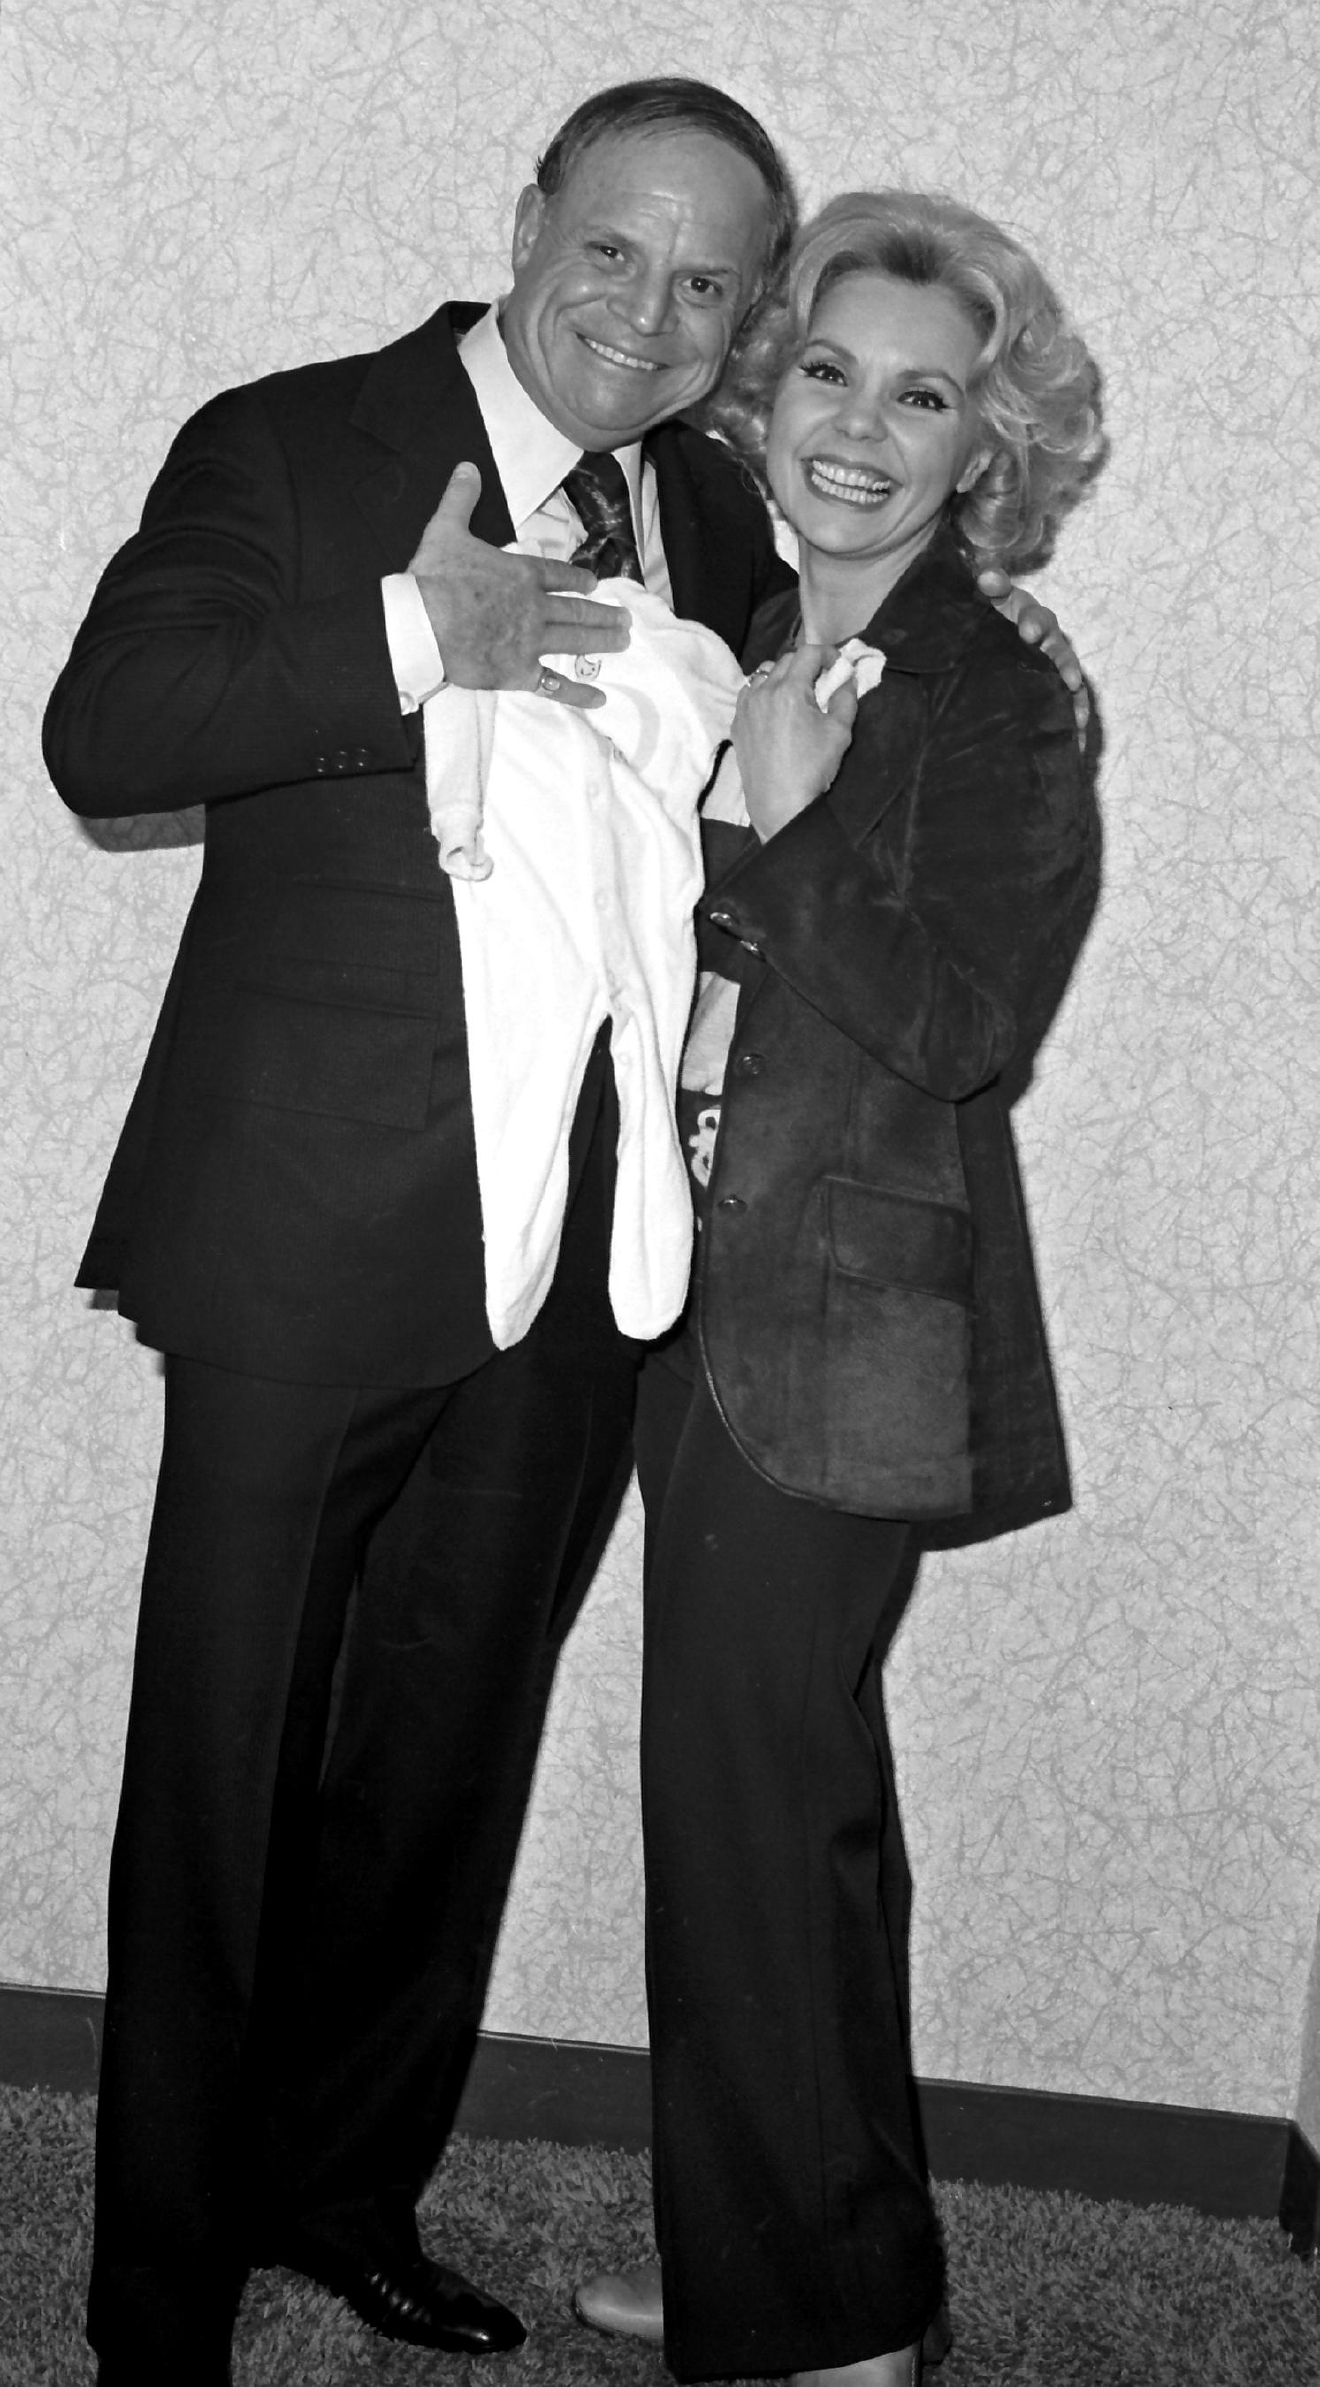 Don Rickles with Theresa Brewer at the Sahara on March 2, 1977. [Las Vegas News Bureau file photo]